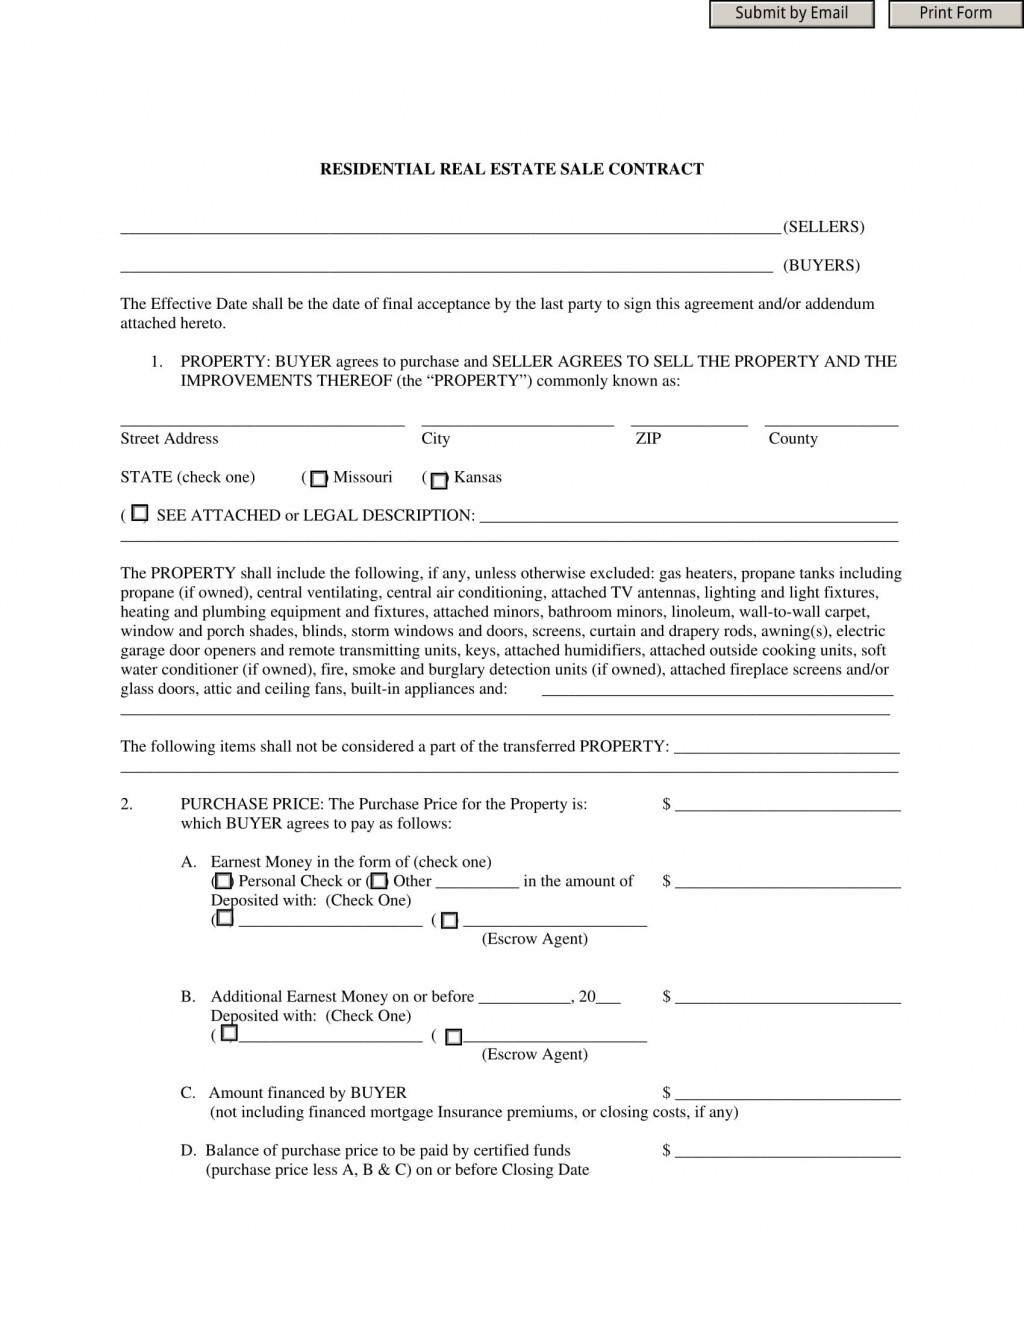 009 Exceptional Residential Purchase Agreement Template Picture  California Form FreeLarge